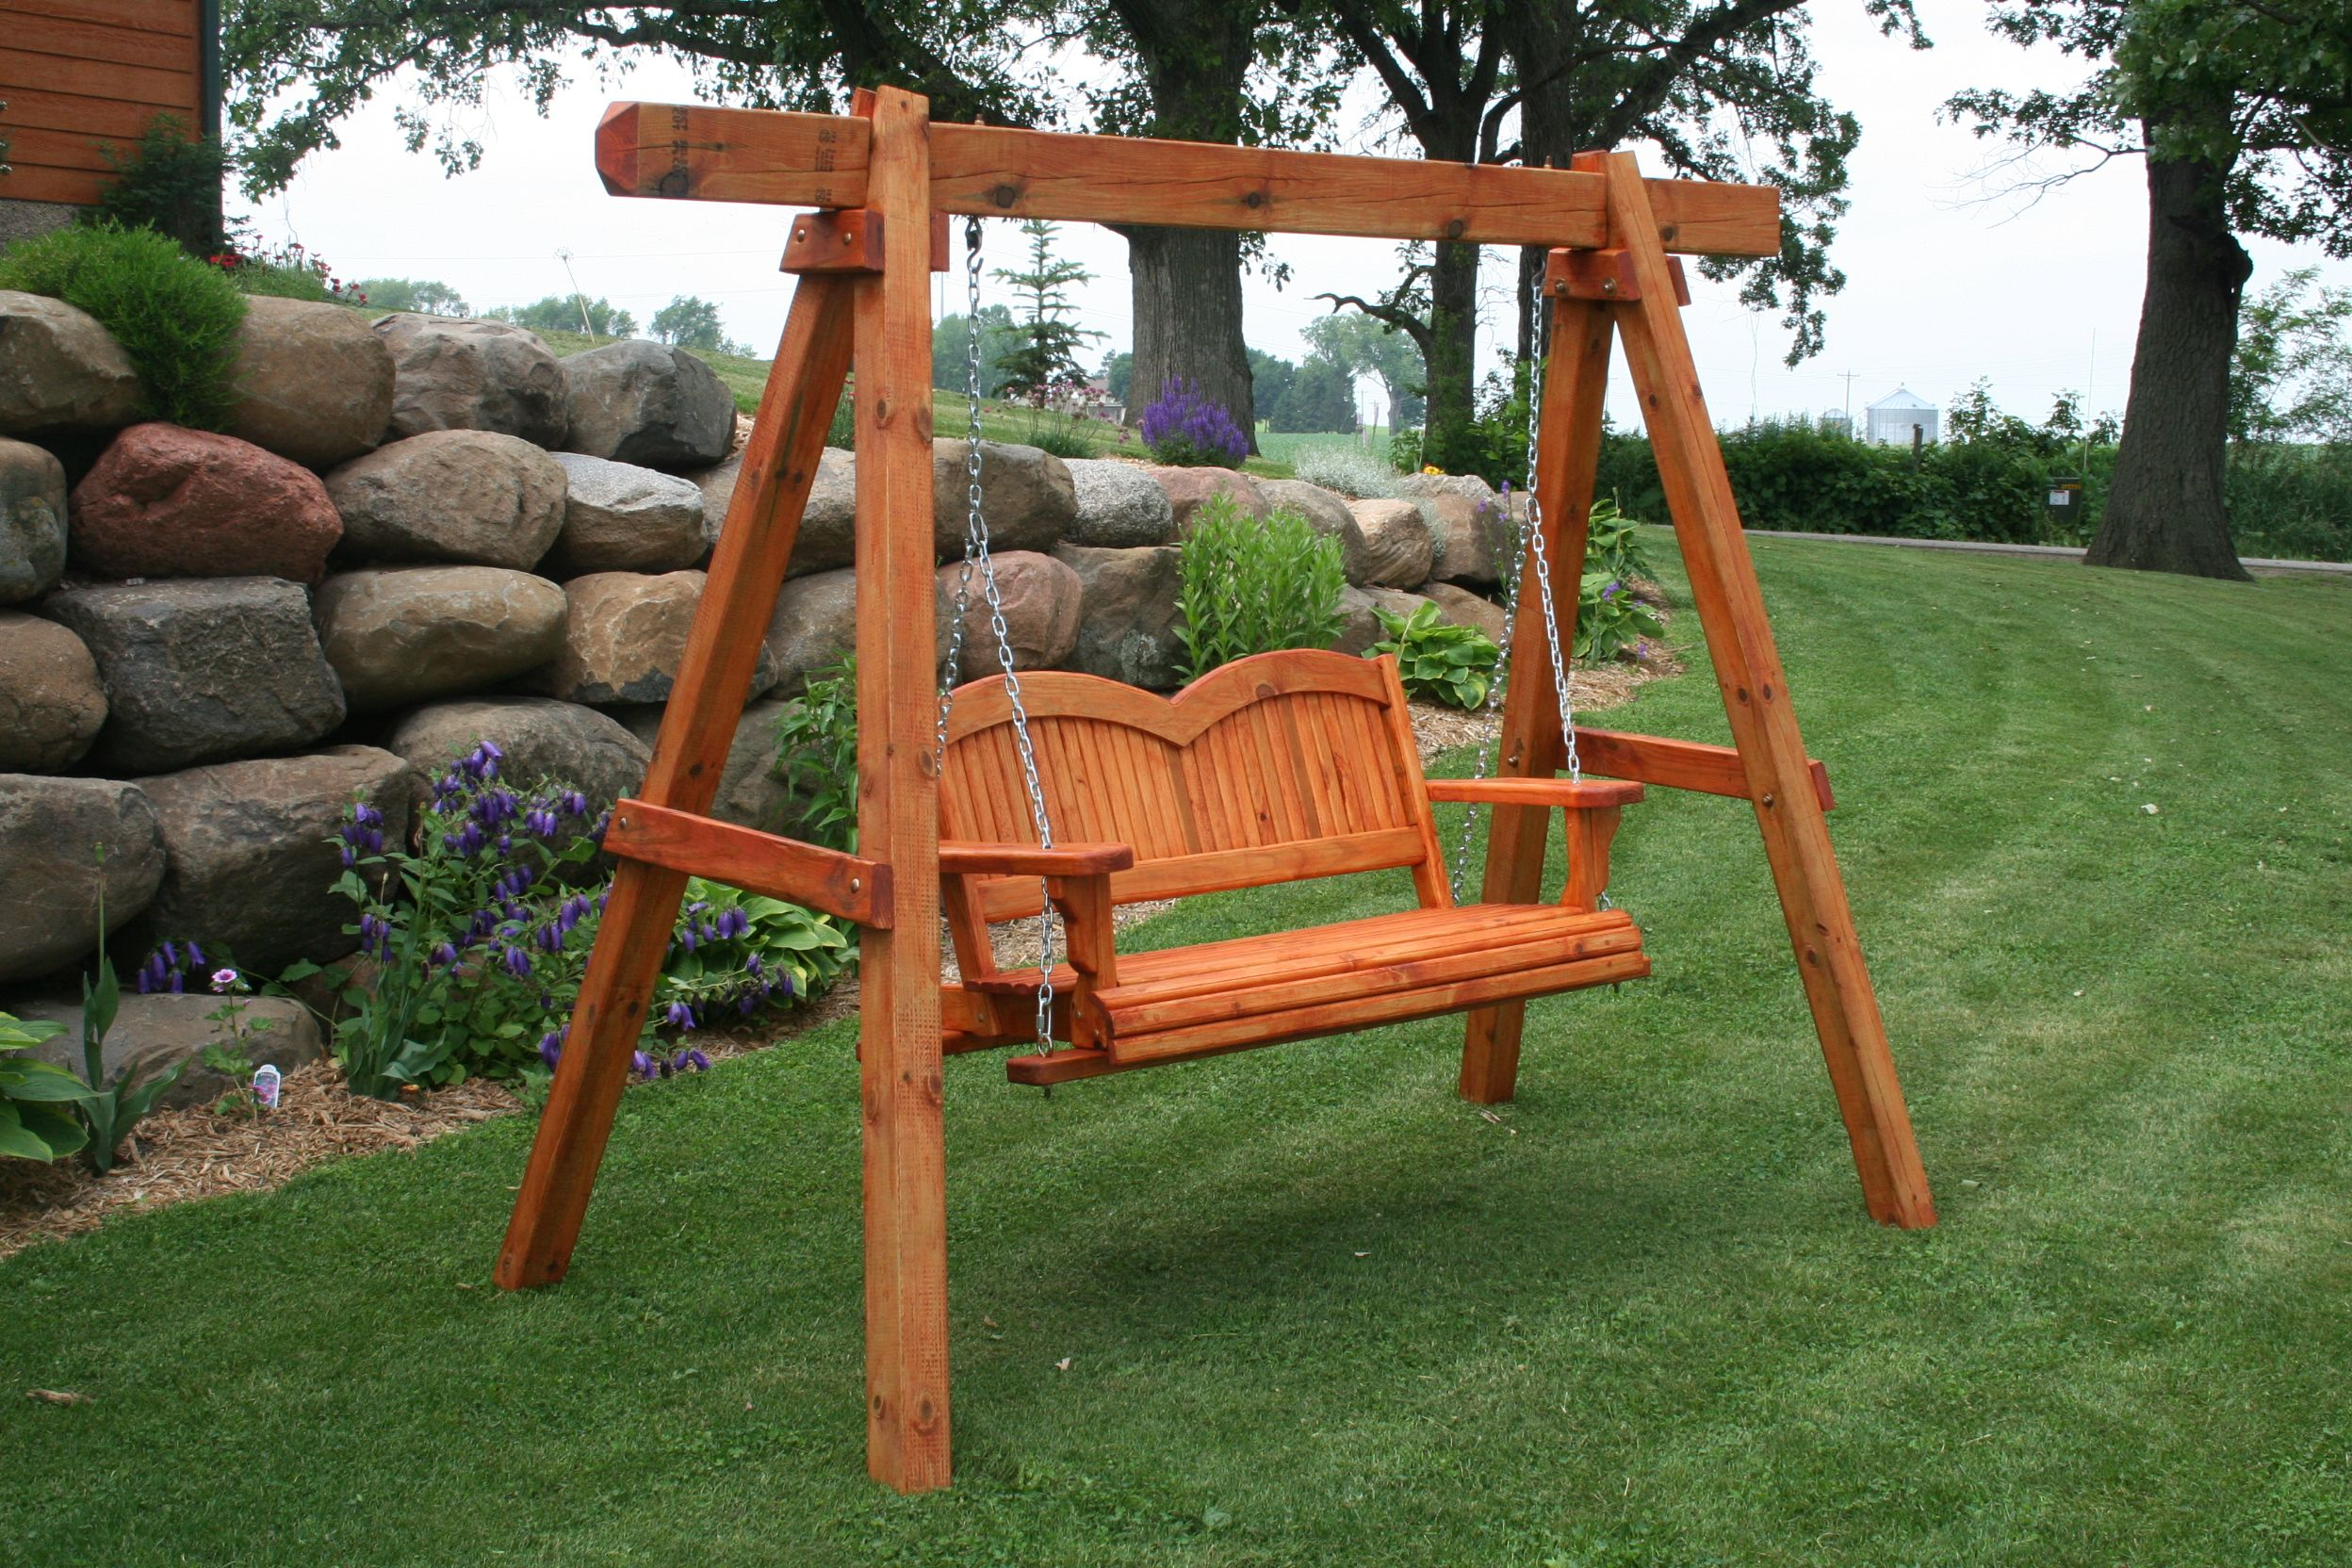 Ideas Wood Porch Swing With Frame Fresh Free Standing 7191 9 Front Light Screened Kits Fixtures Wrought Iron Railings Menards